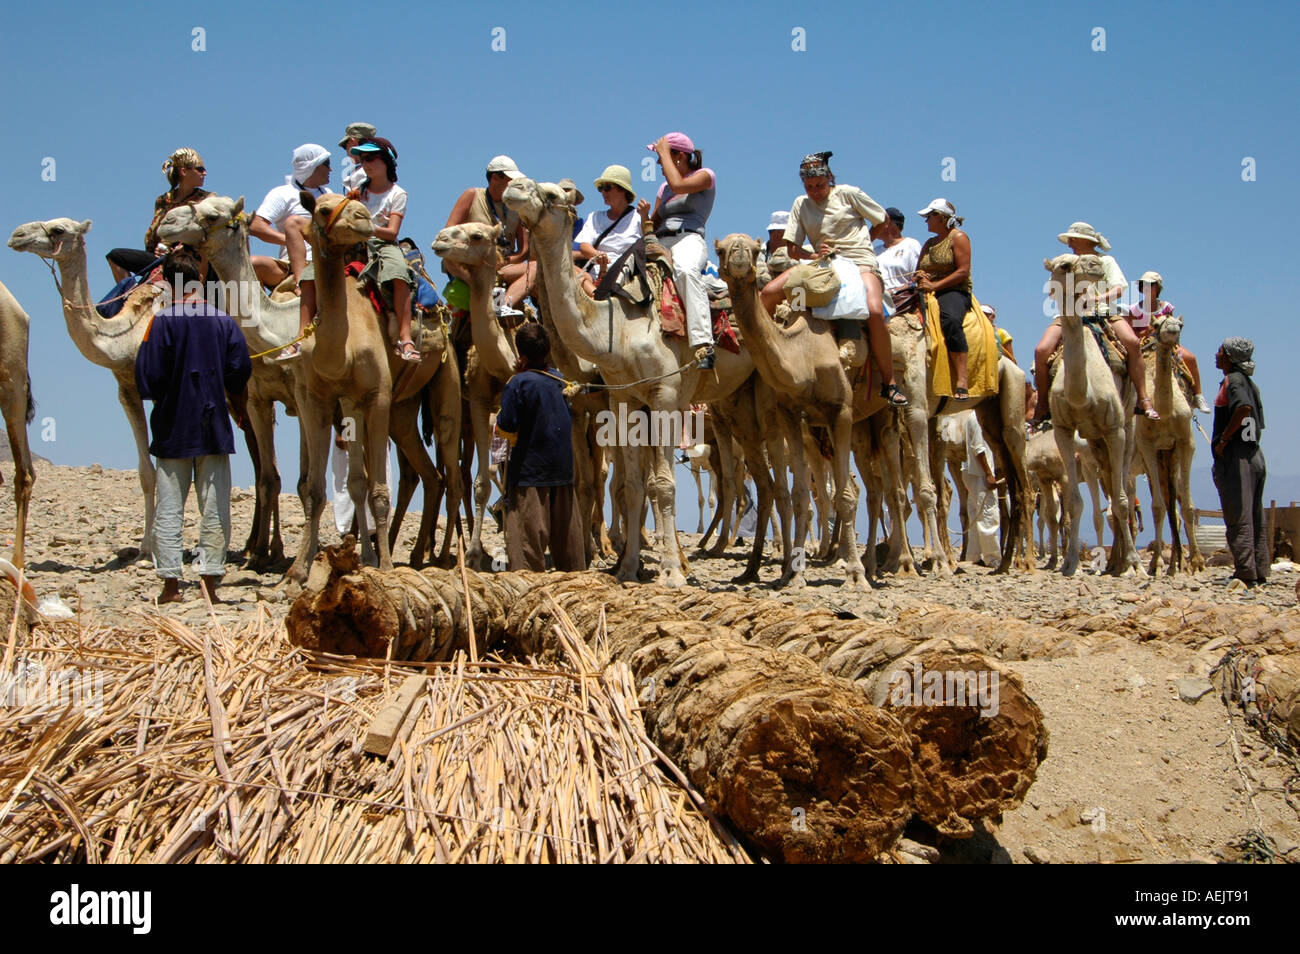 A group of tourists on camels on their way to Ras Abu Galum also Ras Abu Galoum or Ras Abu Gallume north of Dahab town Red Sea Sinai Peninsula Egypt - Stock Image